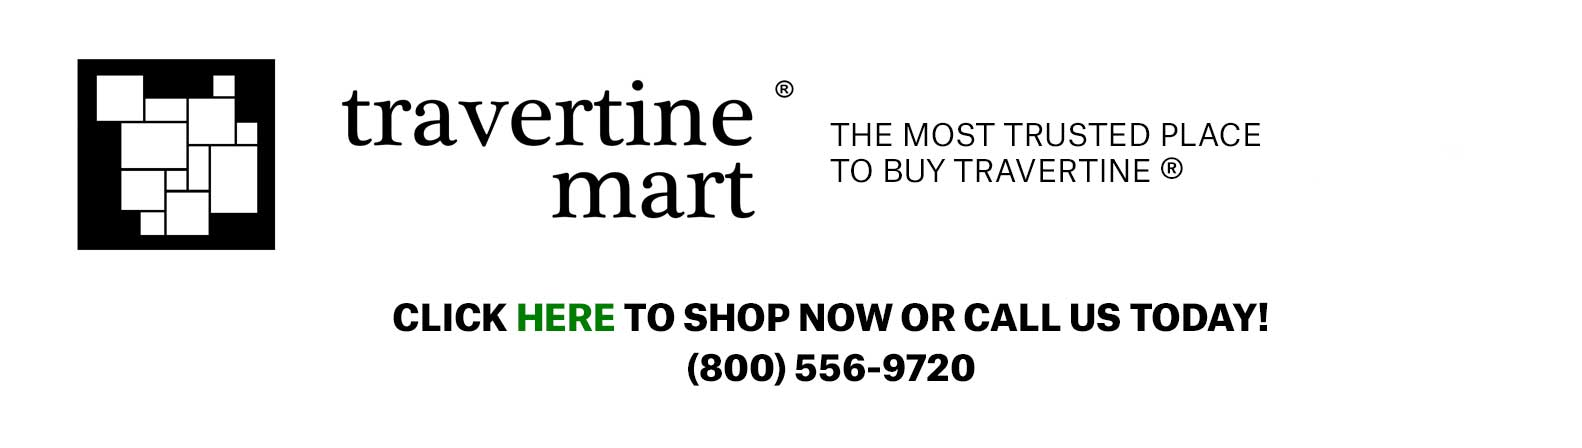 Travertine Mart